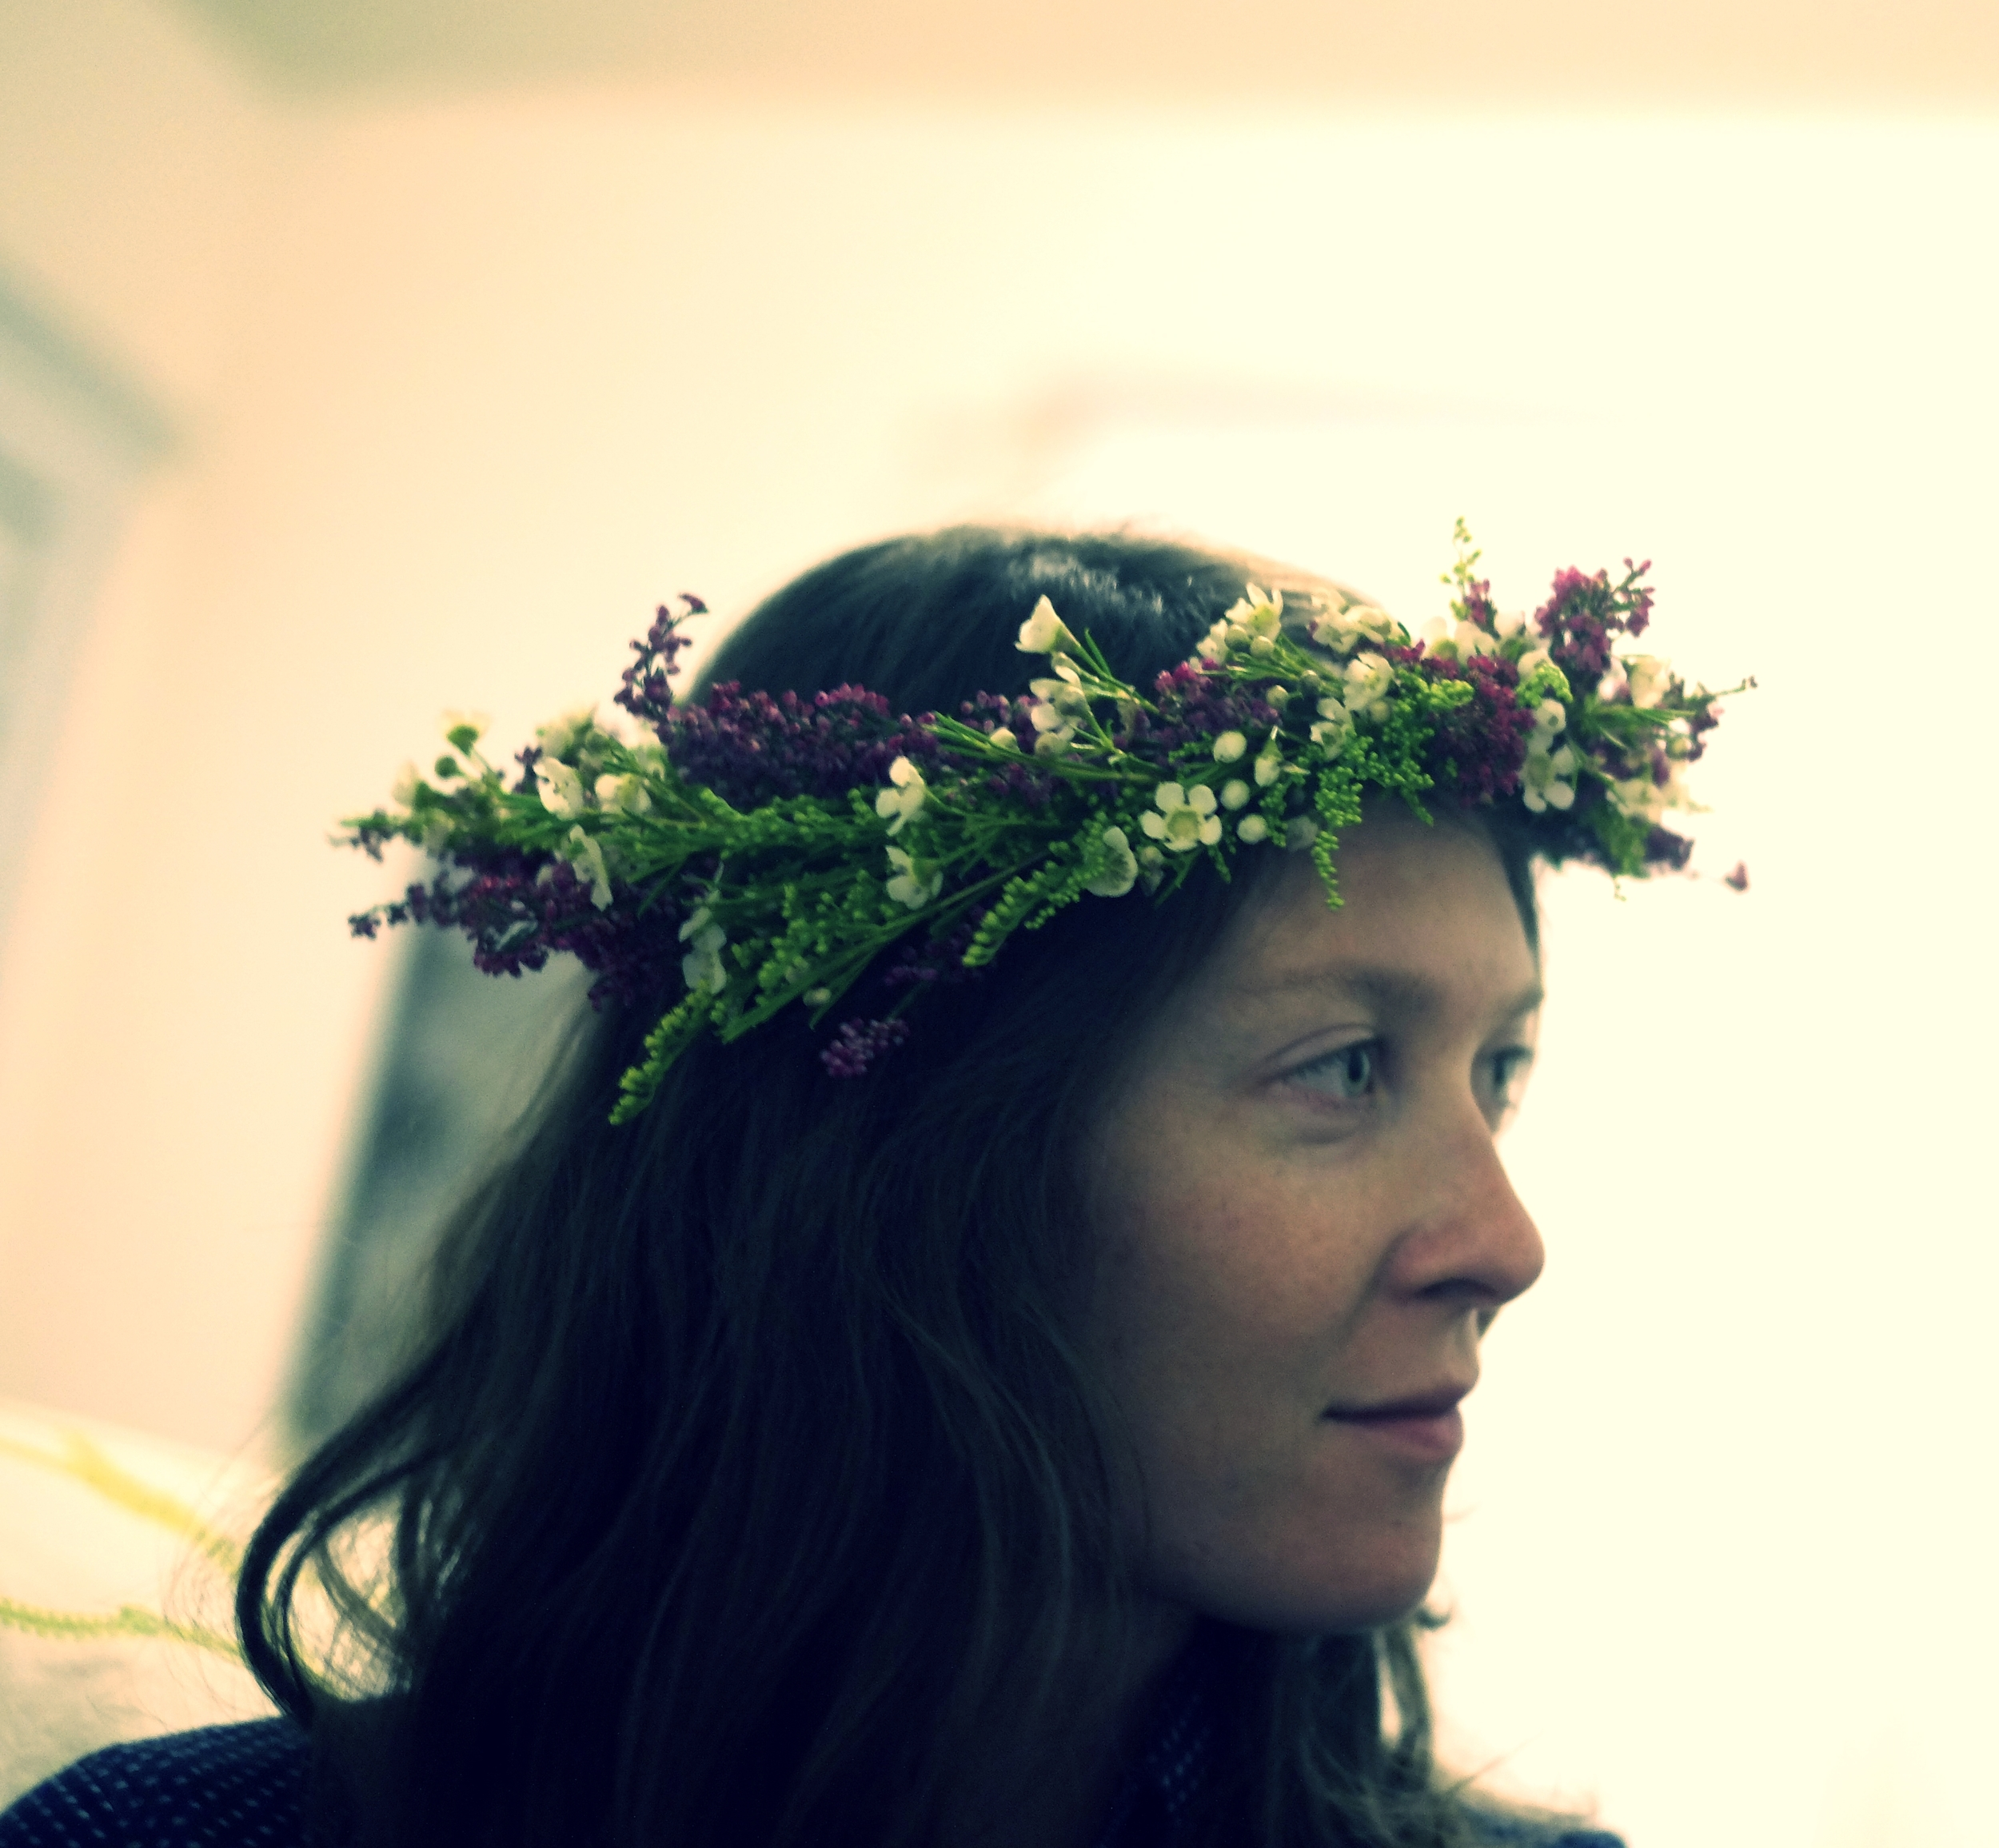 headwreath2_10.1.13.JPG